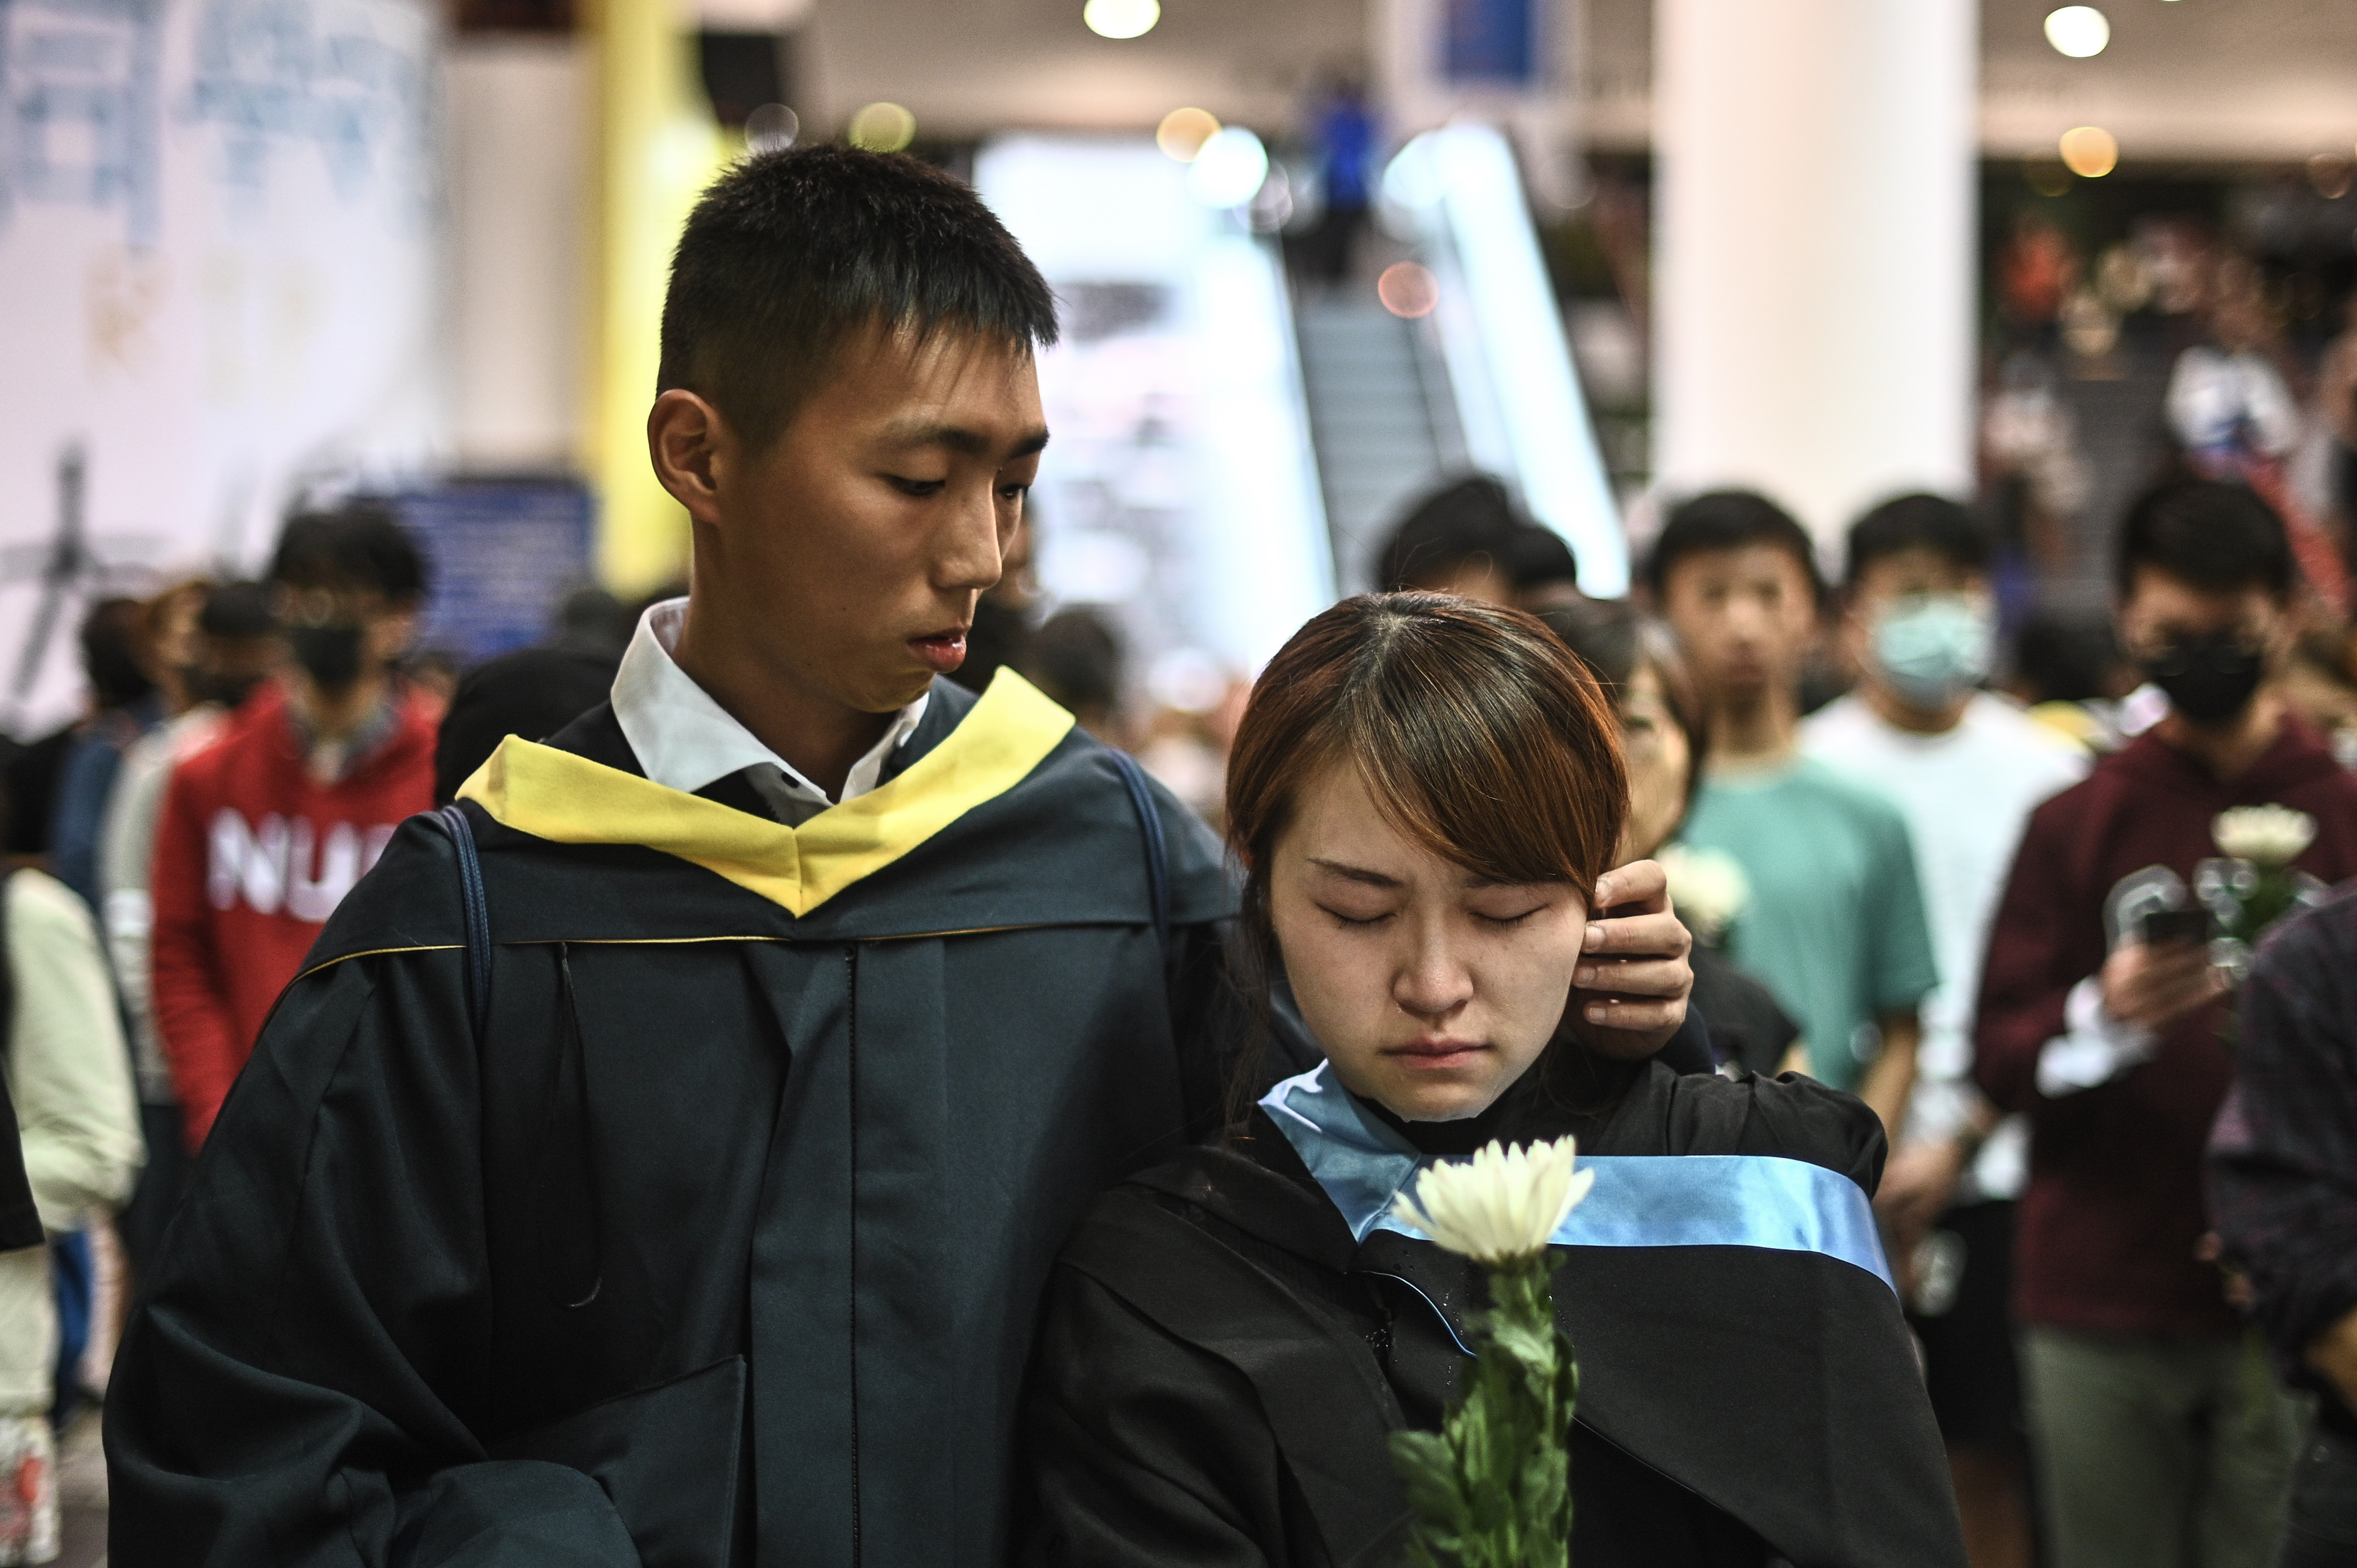 Students take part in a vigil at the Hong Kong University of Science and Technology (HKUST) in Hong Kong on November 8, 2019 for student Alex Chow, 22, who died earlier in the day after he was taken unconscious to hospital early on November 4 following late-night clashes between police and protesters.(PHILIP FONG/AFP via Getty Images)